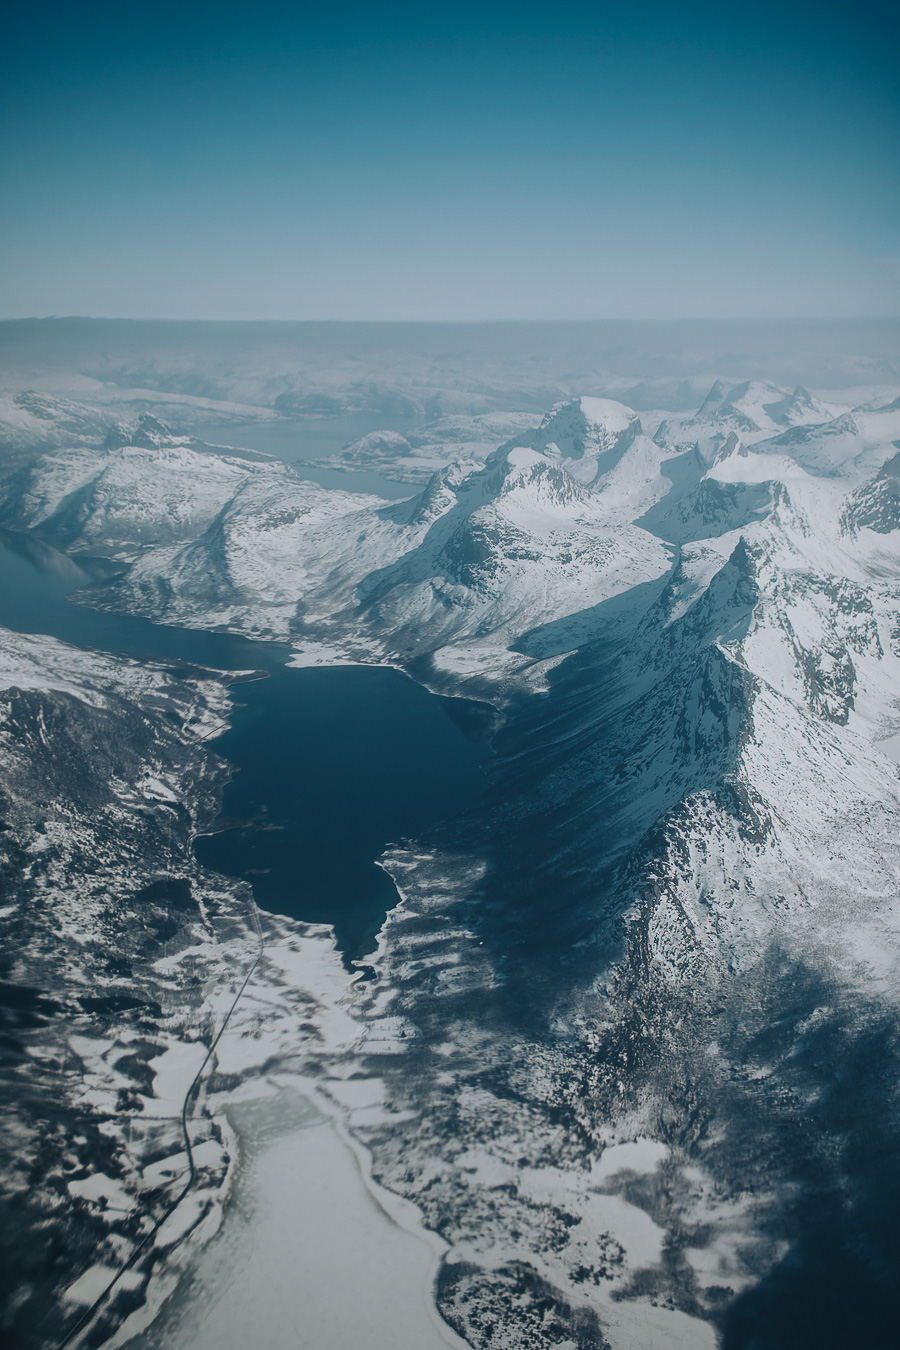 Norway seen from the air